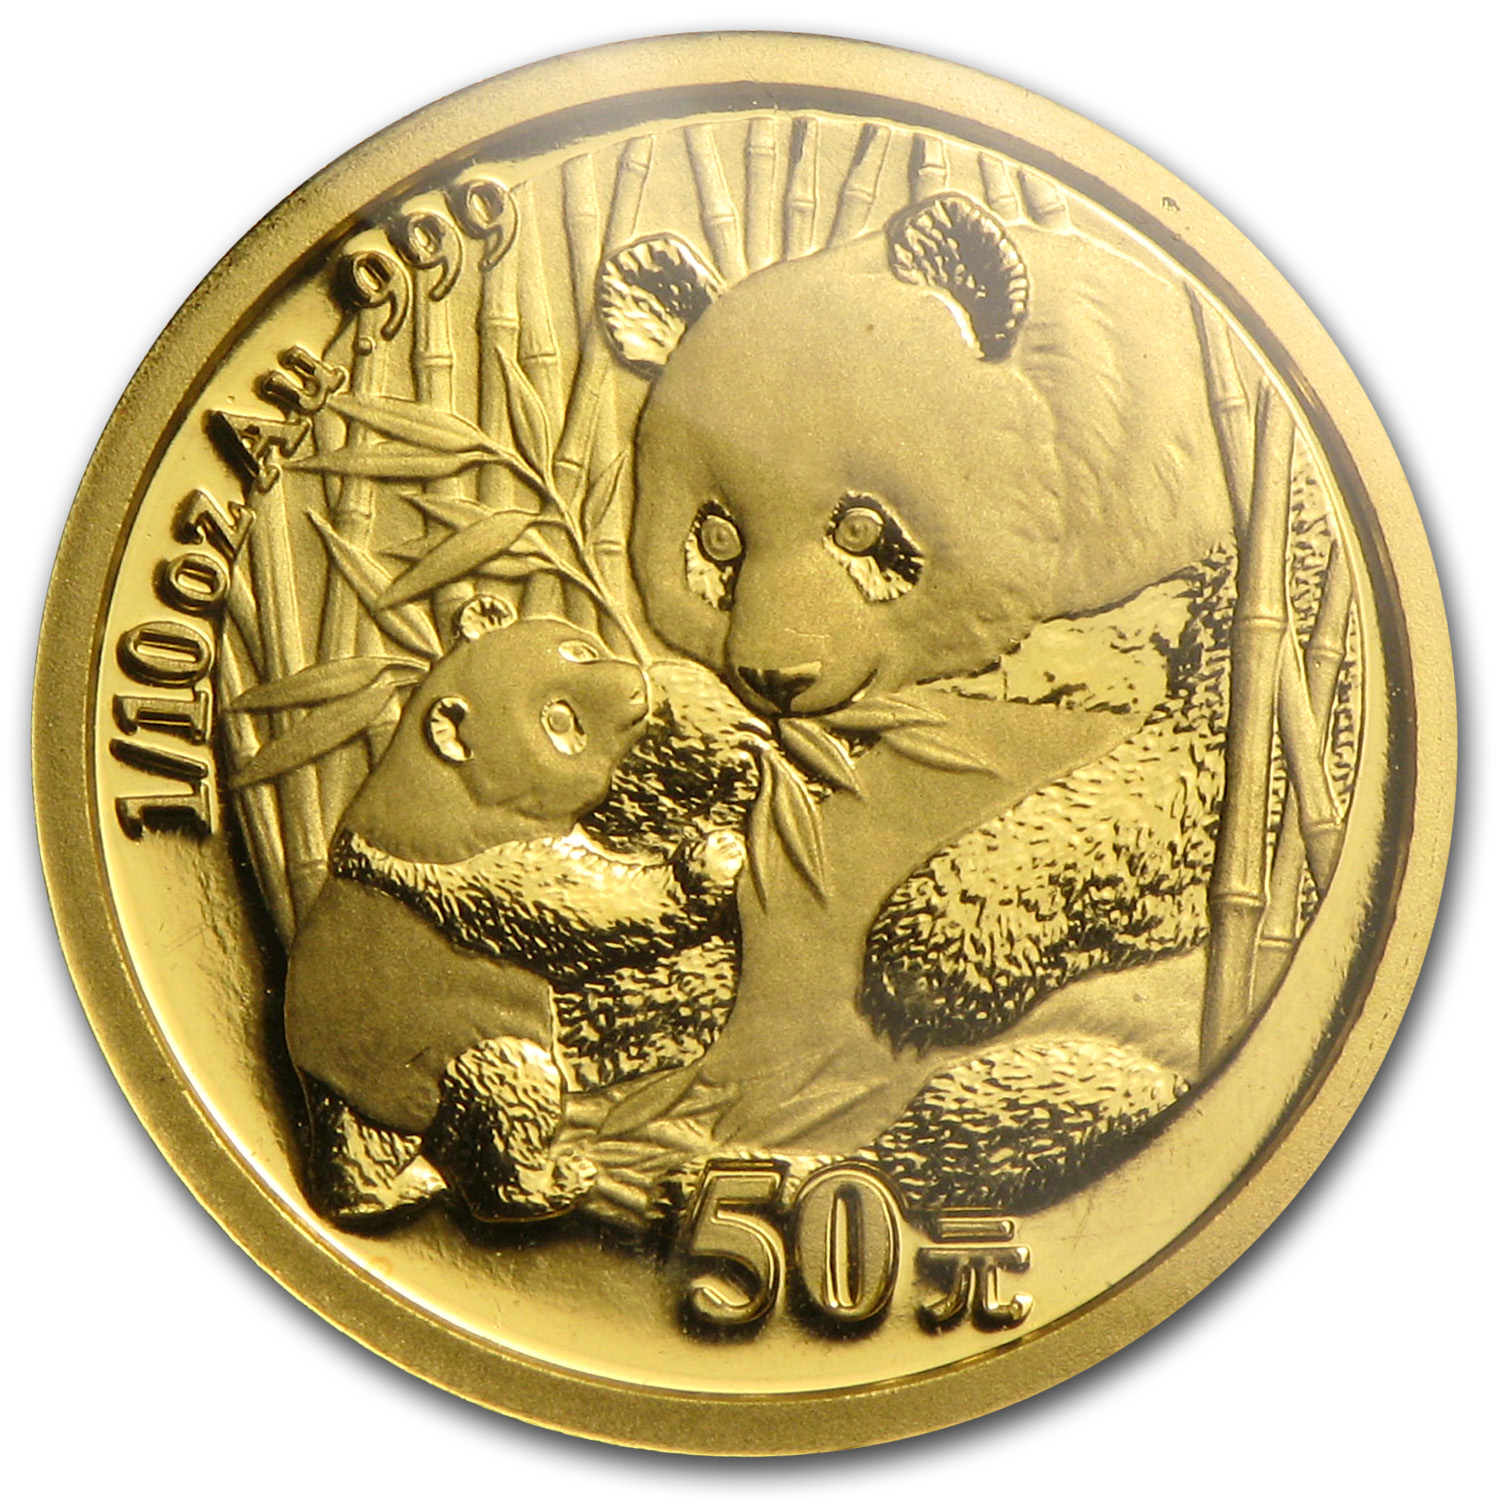 2005 1/10 oz Gold Chinese Panda BU (Sealed)